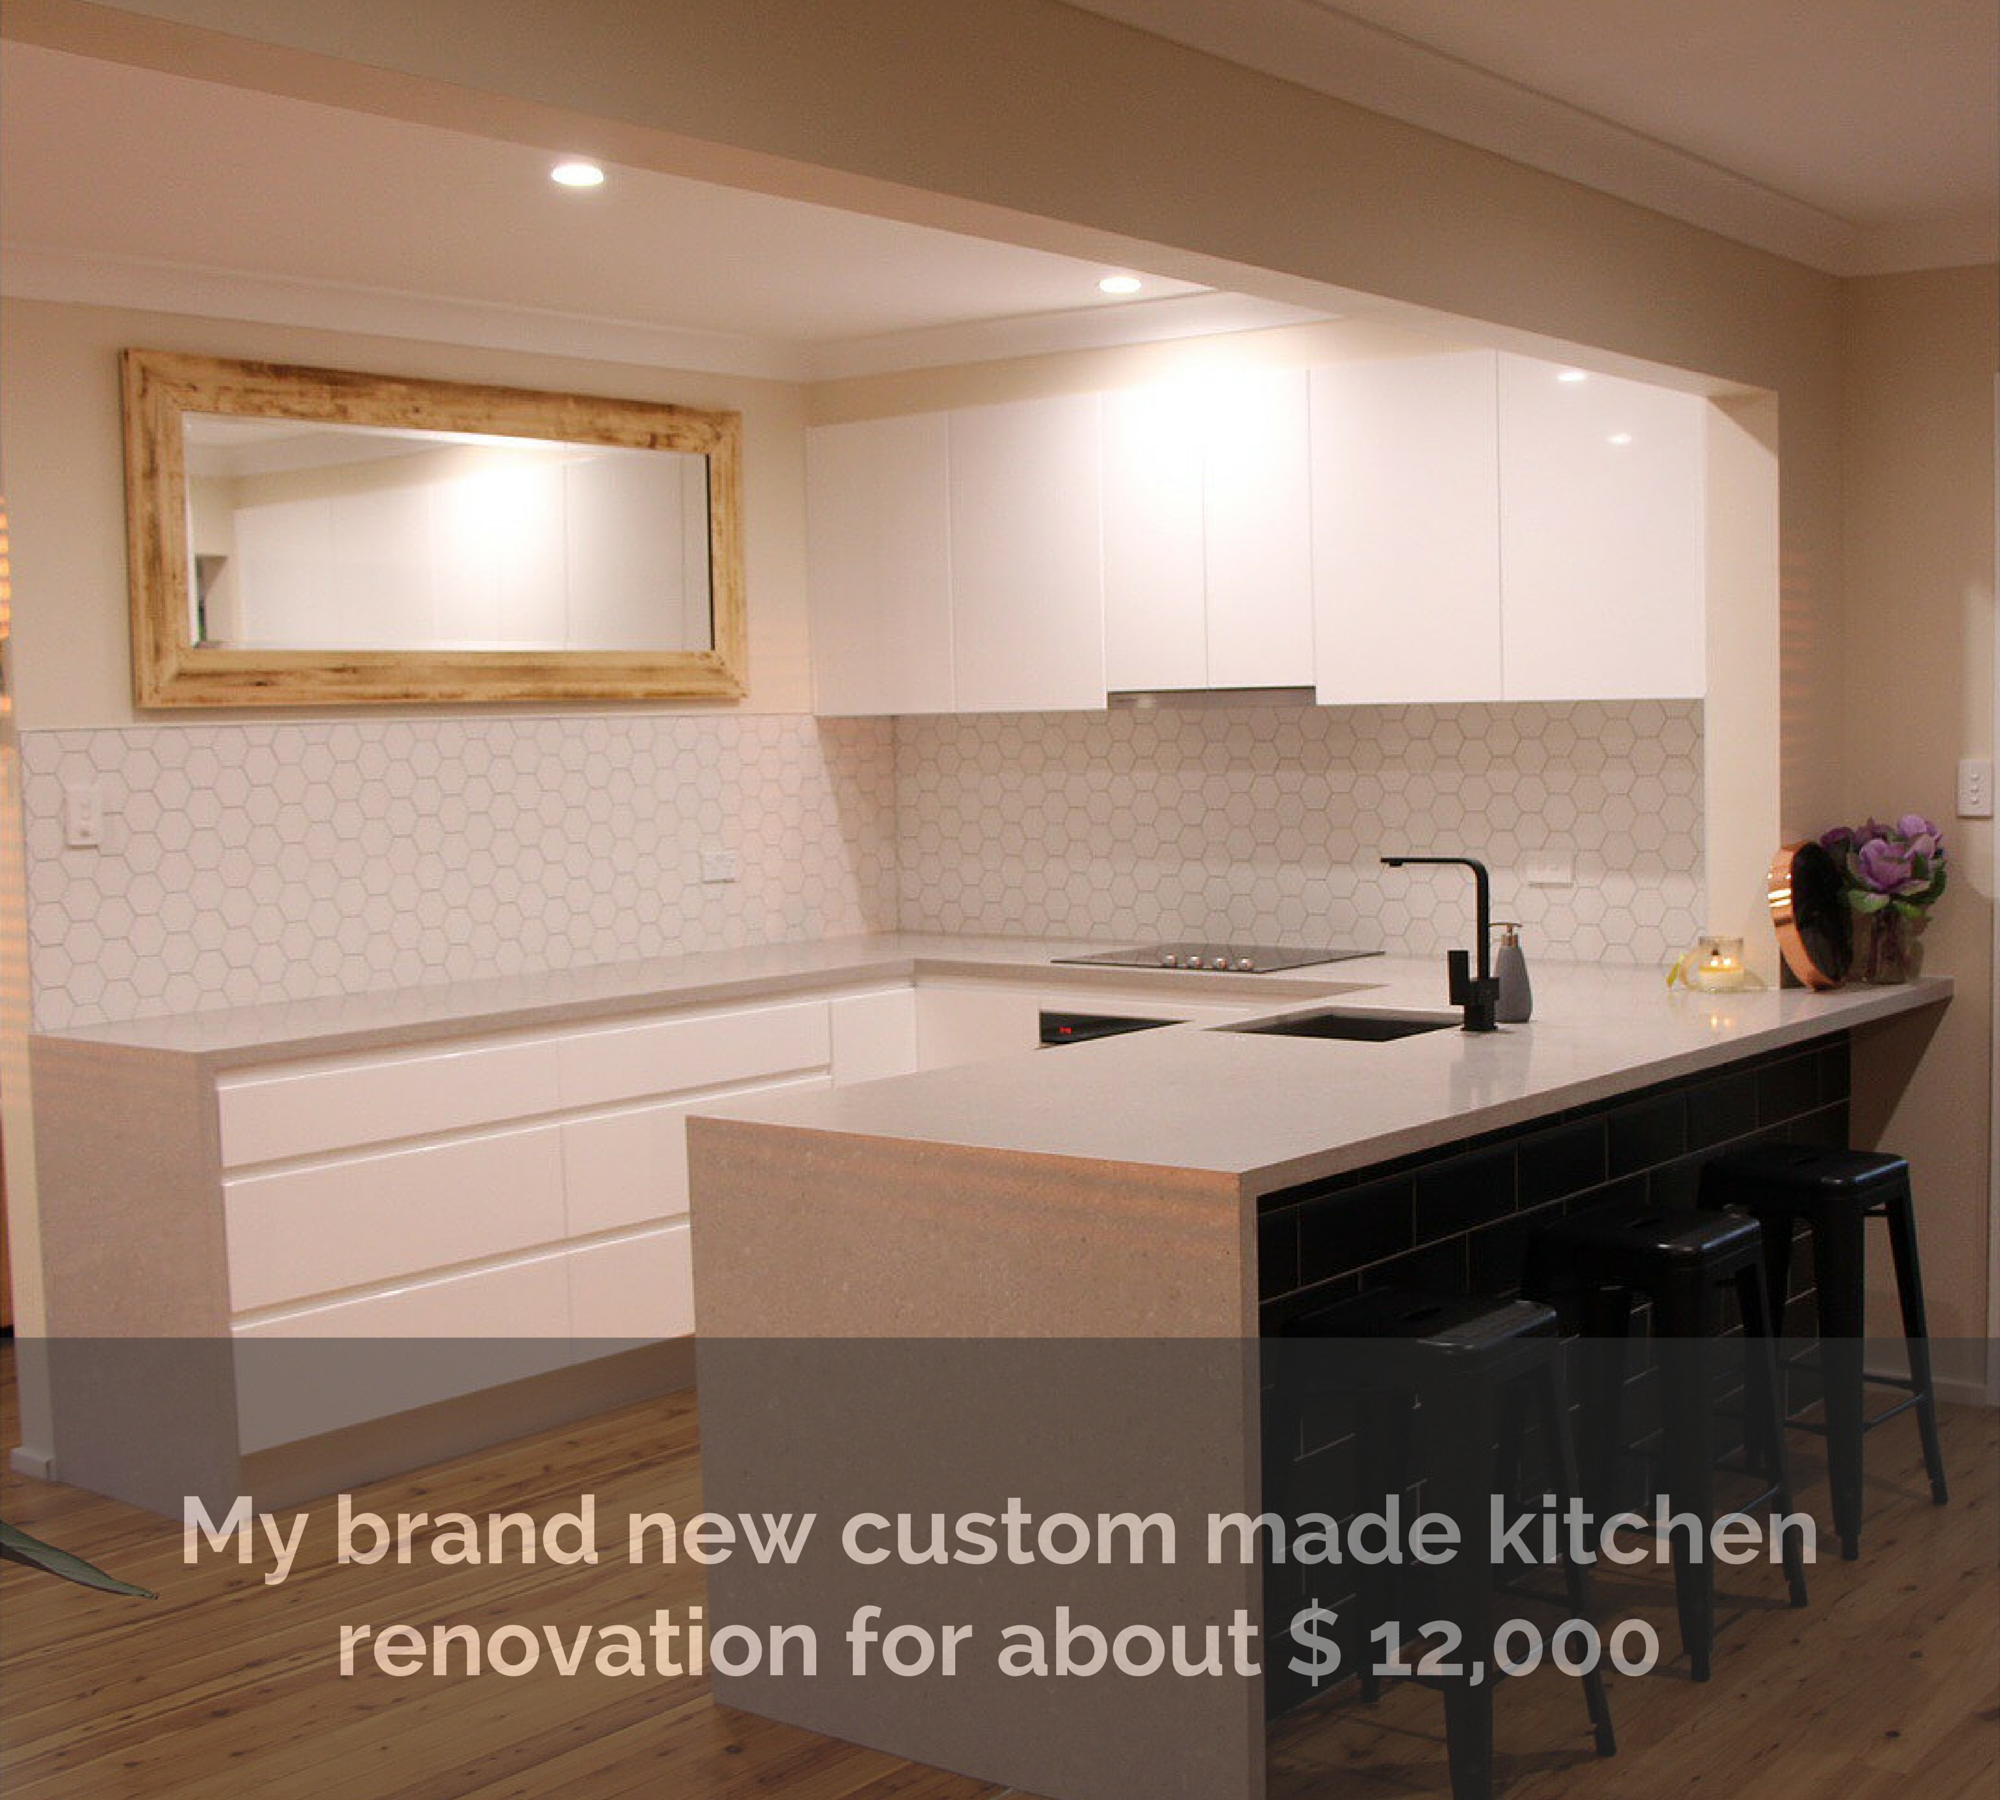 brand new custom made kitchen renovation for about $ 12,000